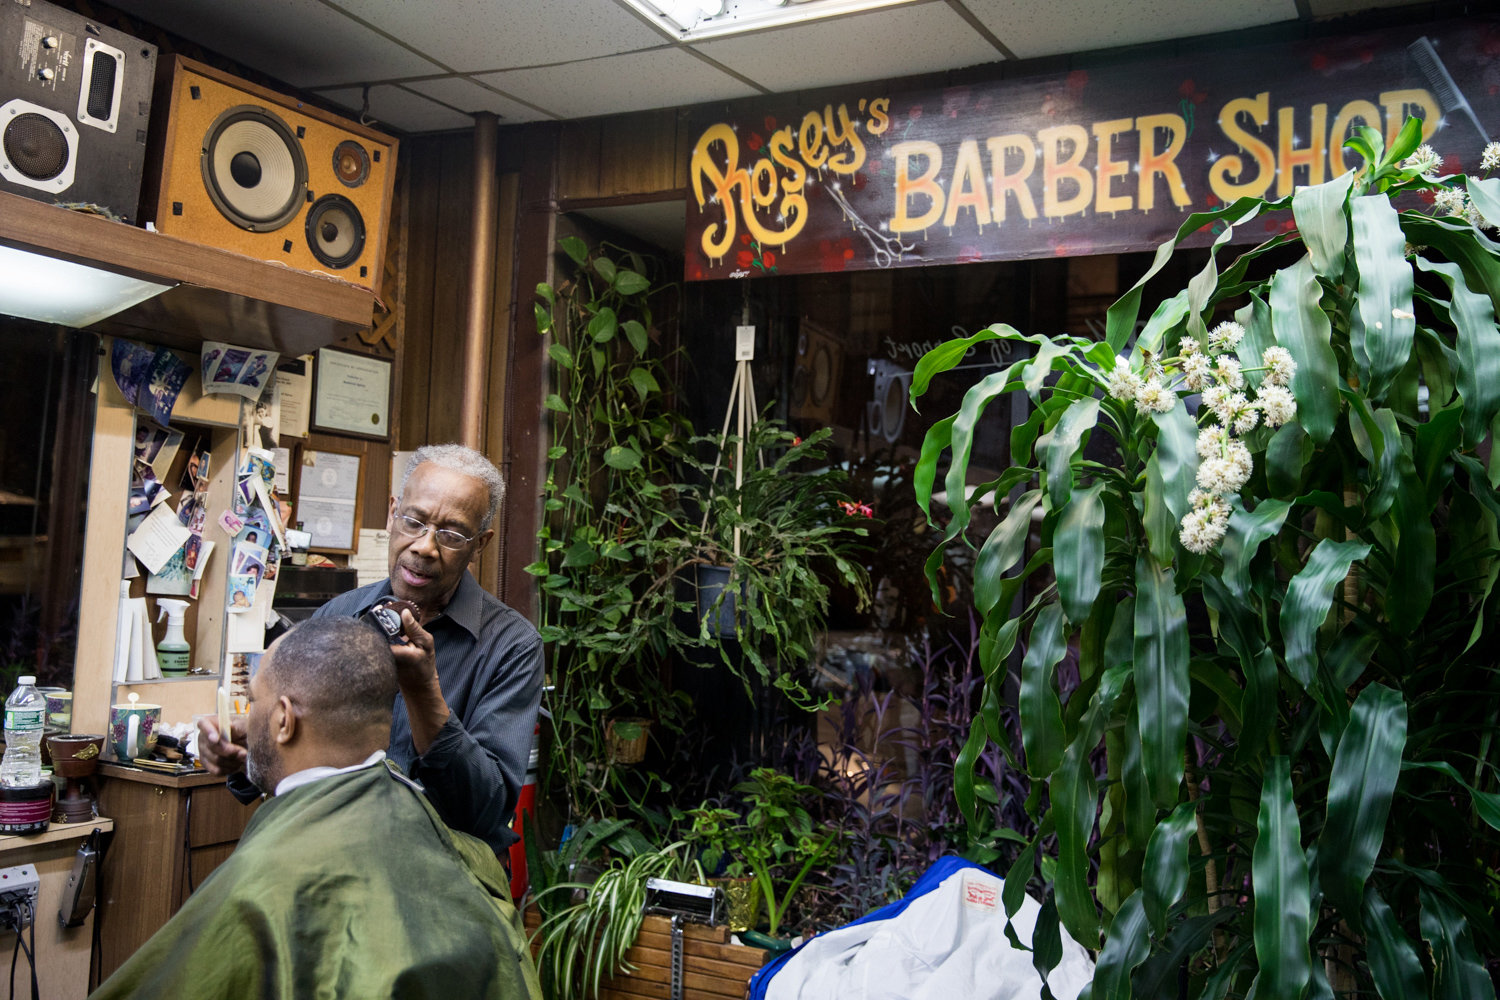 The Rev. J. Loren Russell has been getting his hair cut at Marble Hill's International Unisex Salon since the '70s, with owner Roosevelt Spivey his barber for much of that time. Spivey is a master his clippers, which is what keeps Russell coming back. When Rosey's business was threatened by a rent hike last year, Russell was confident Spivey would come out on top because the community was on his side.